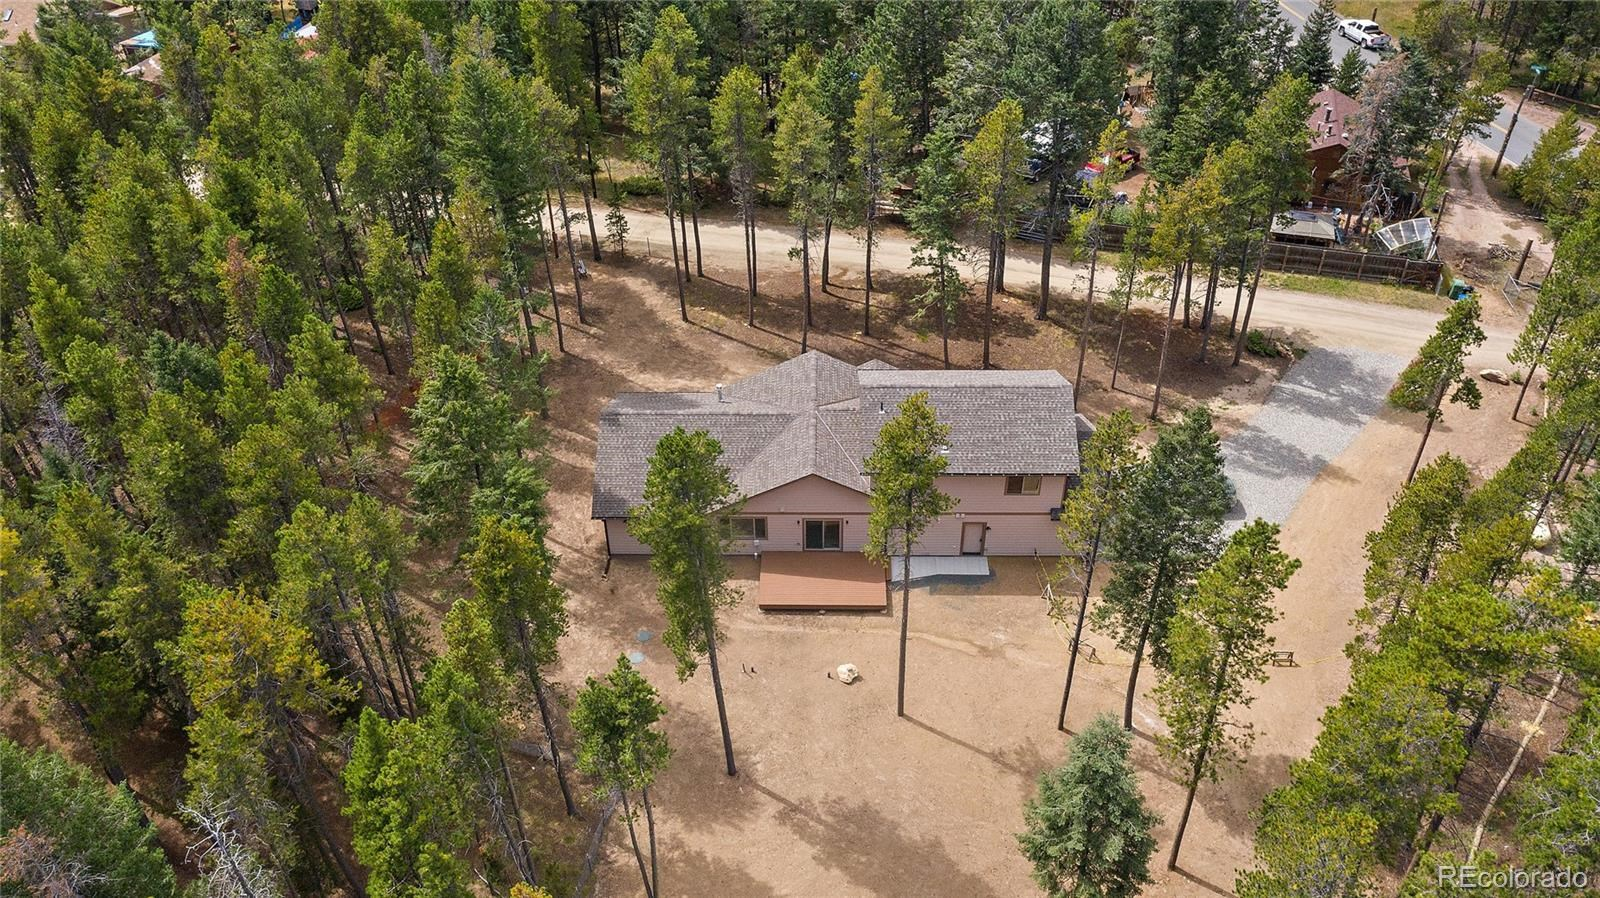 MLS# 3859300 - 31 - 10892 Barker Avenue, Conifer, CO 80433